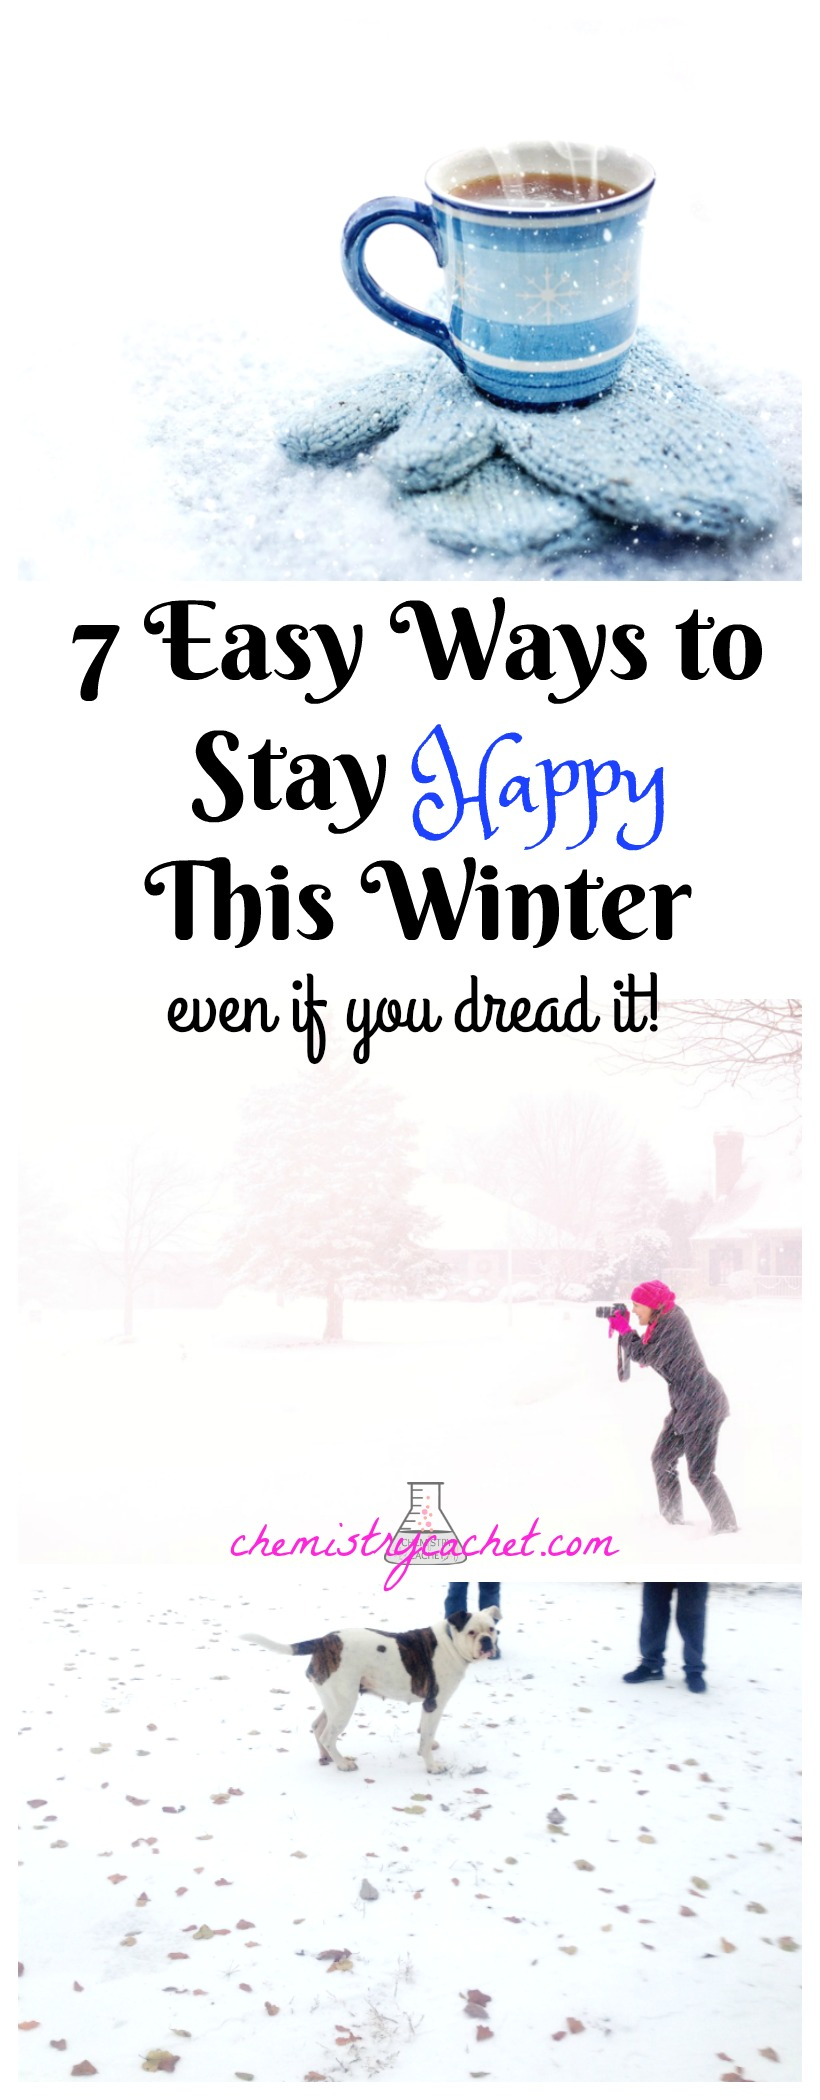 7 Easy Ways to Stay Happy this Winter...Even if You dread Winter or Hate Winter! on chemistrycachet.com